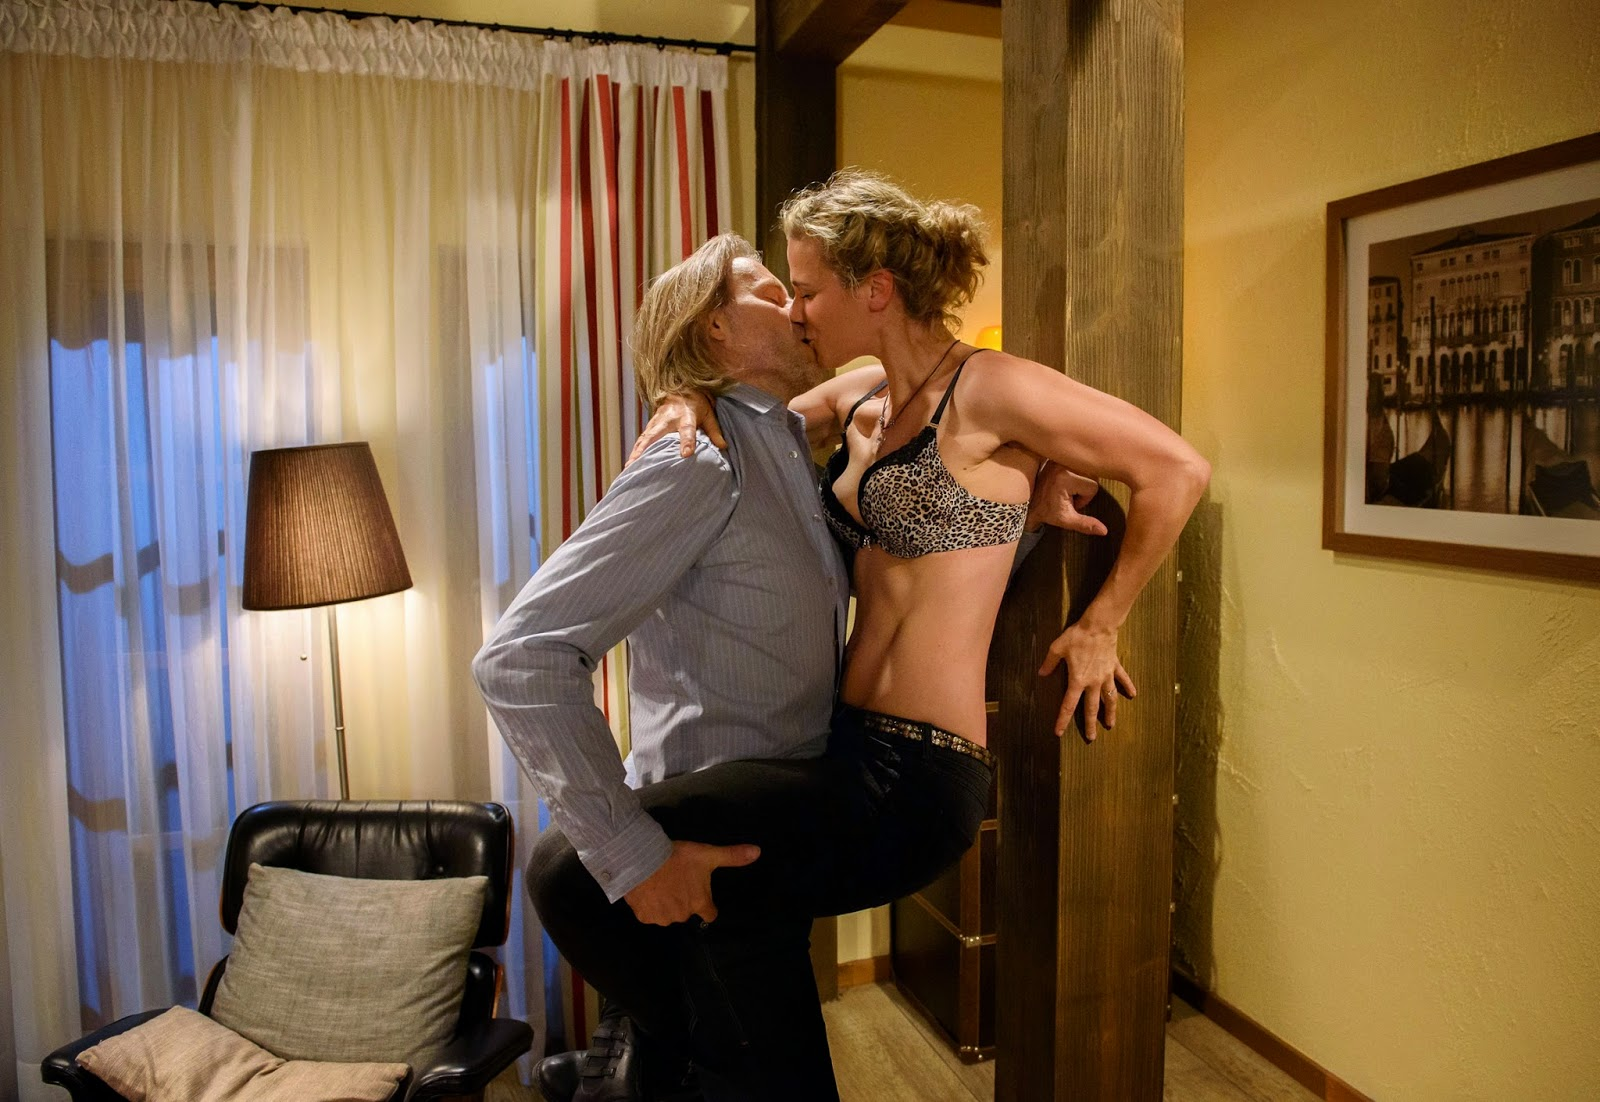 film d amore e passione hot series on tv